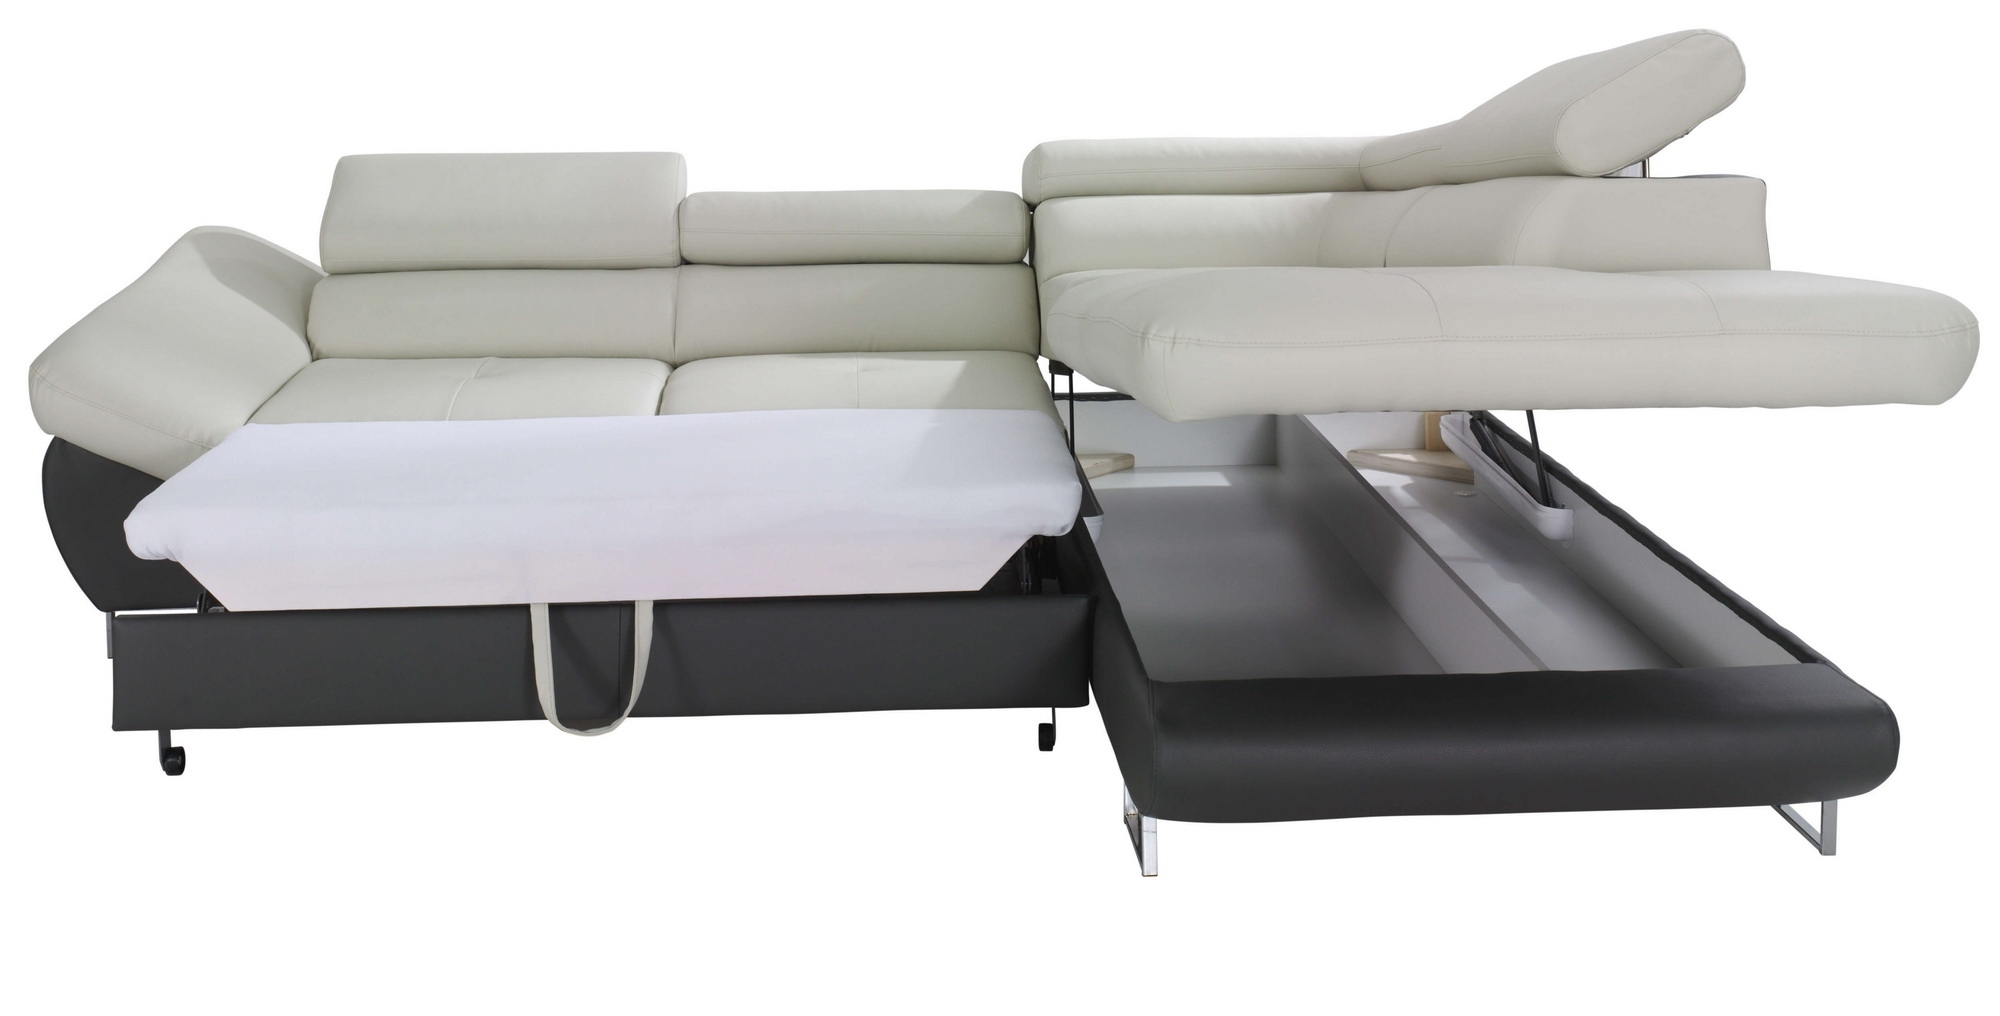 Trendy Sofa Sleepers With Chaise Regarding Fabio Sectional Sofa Sleeper With Storage, Creative Furniture (View 12 of 15)